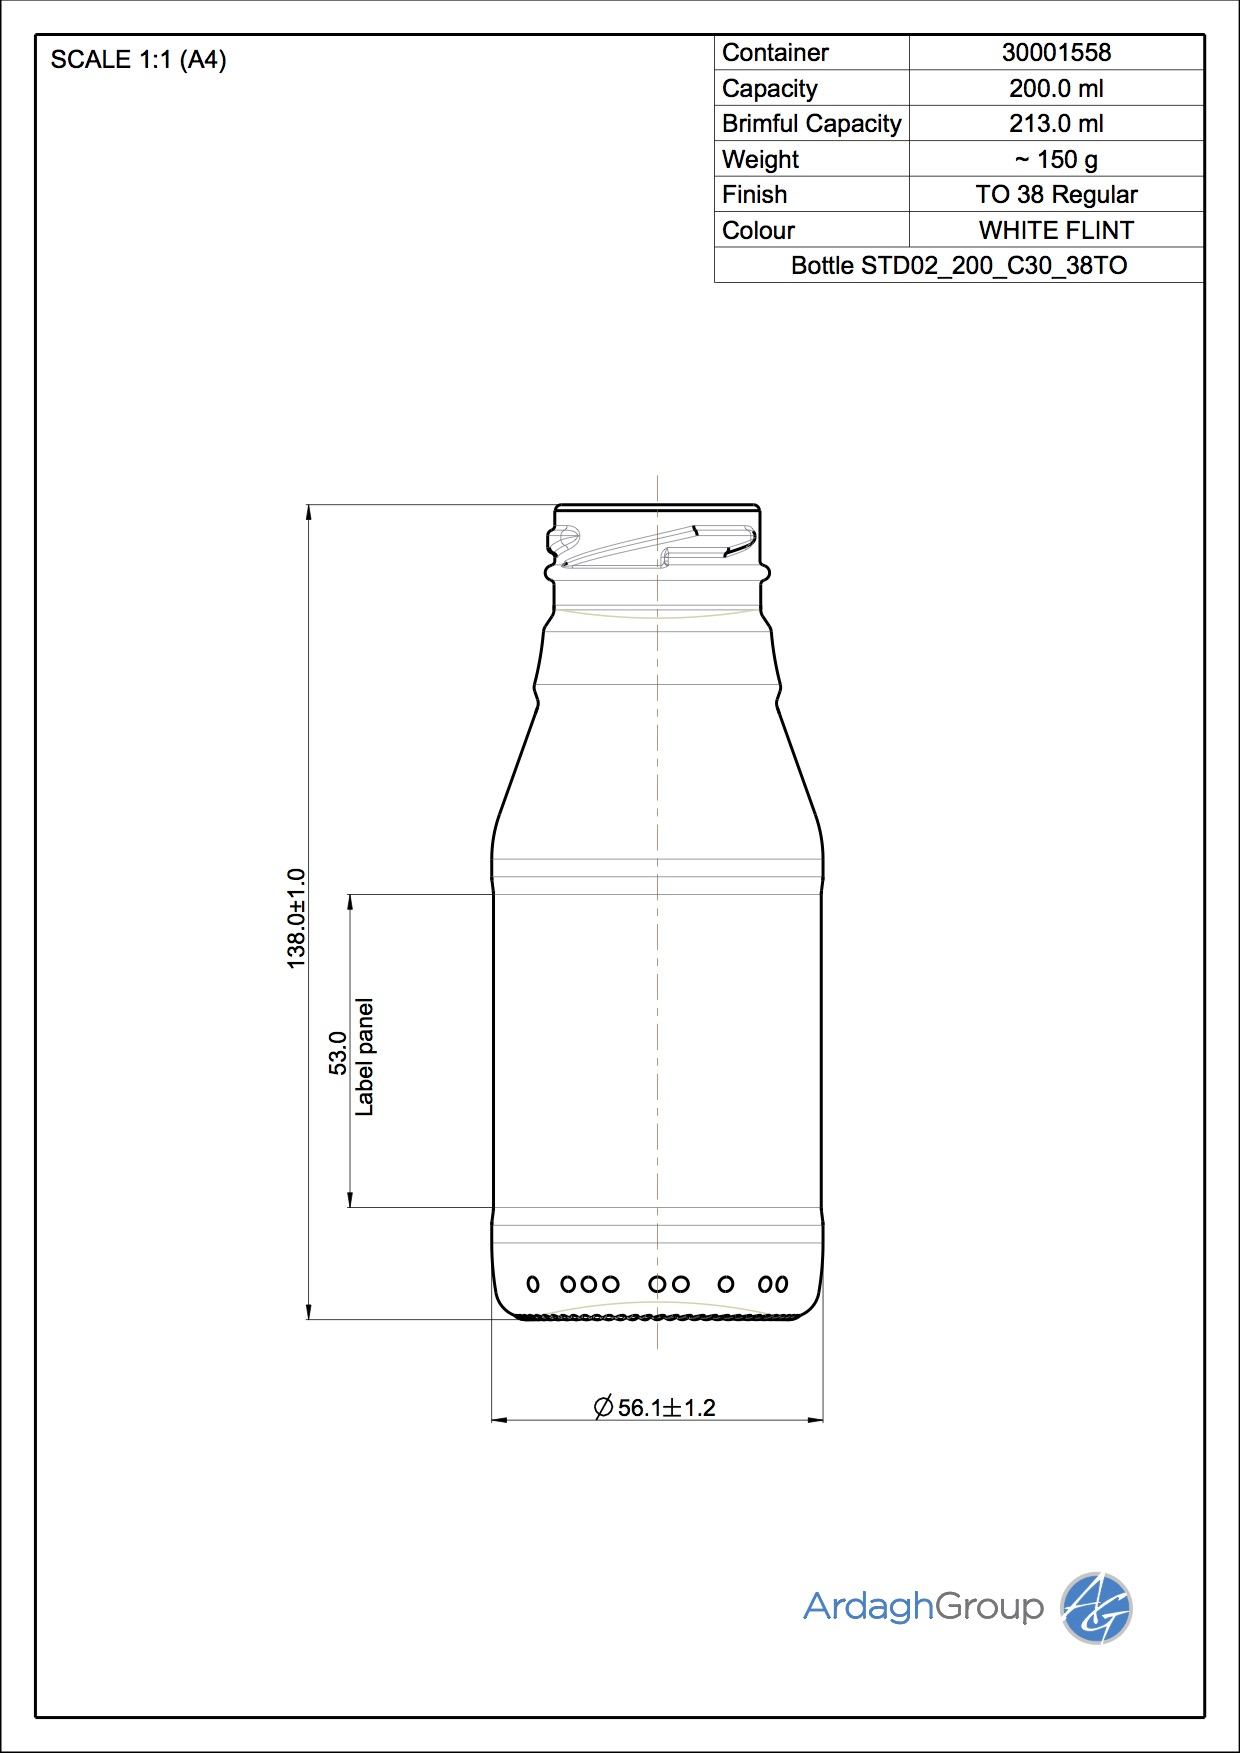 Bottle STD02 200 C30 38TO